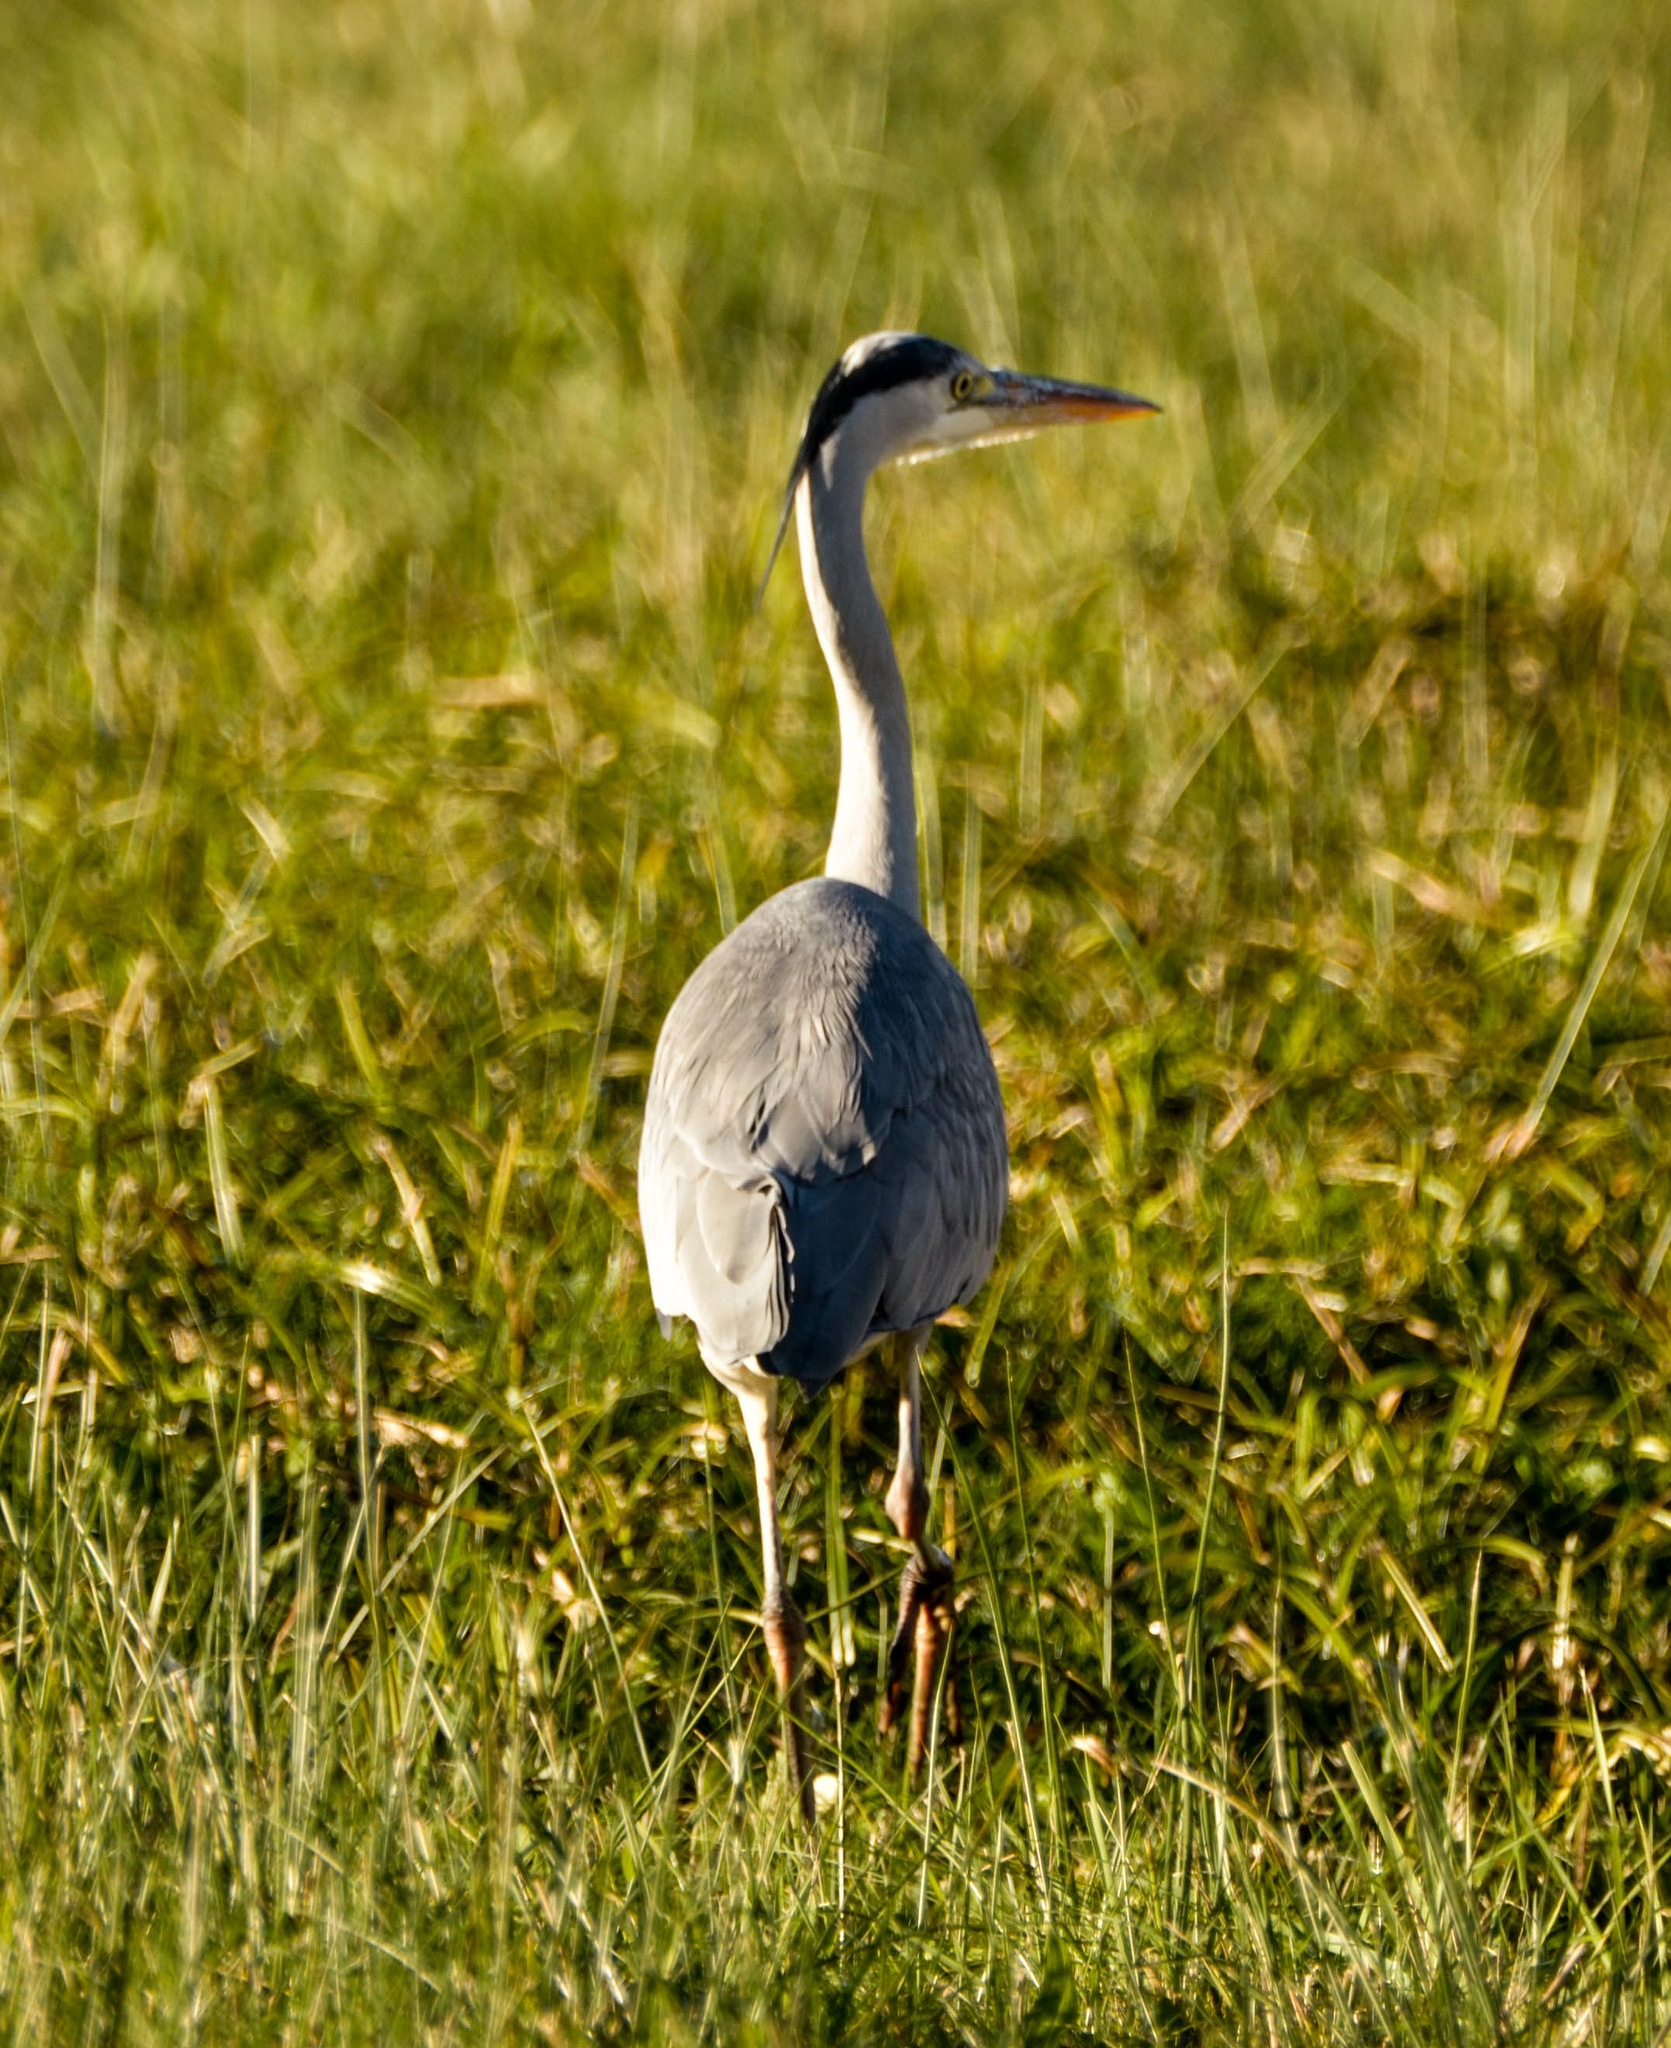 Heron by Johnny Lythell